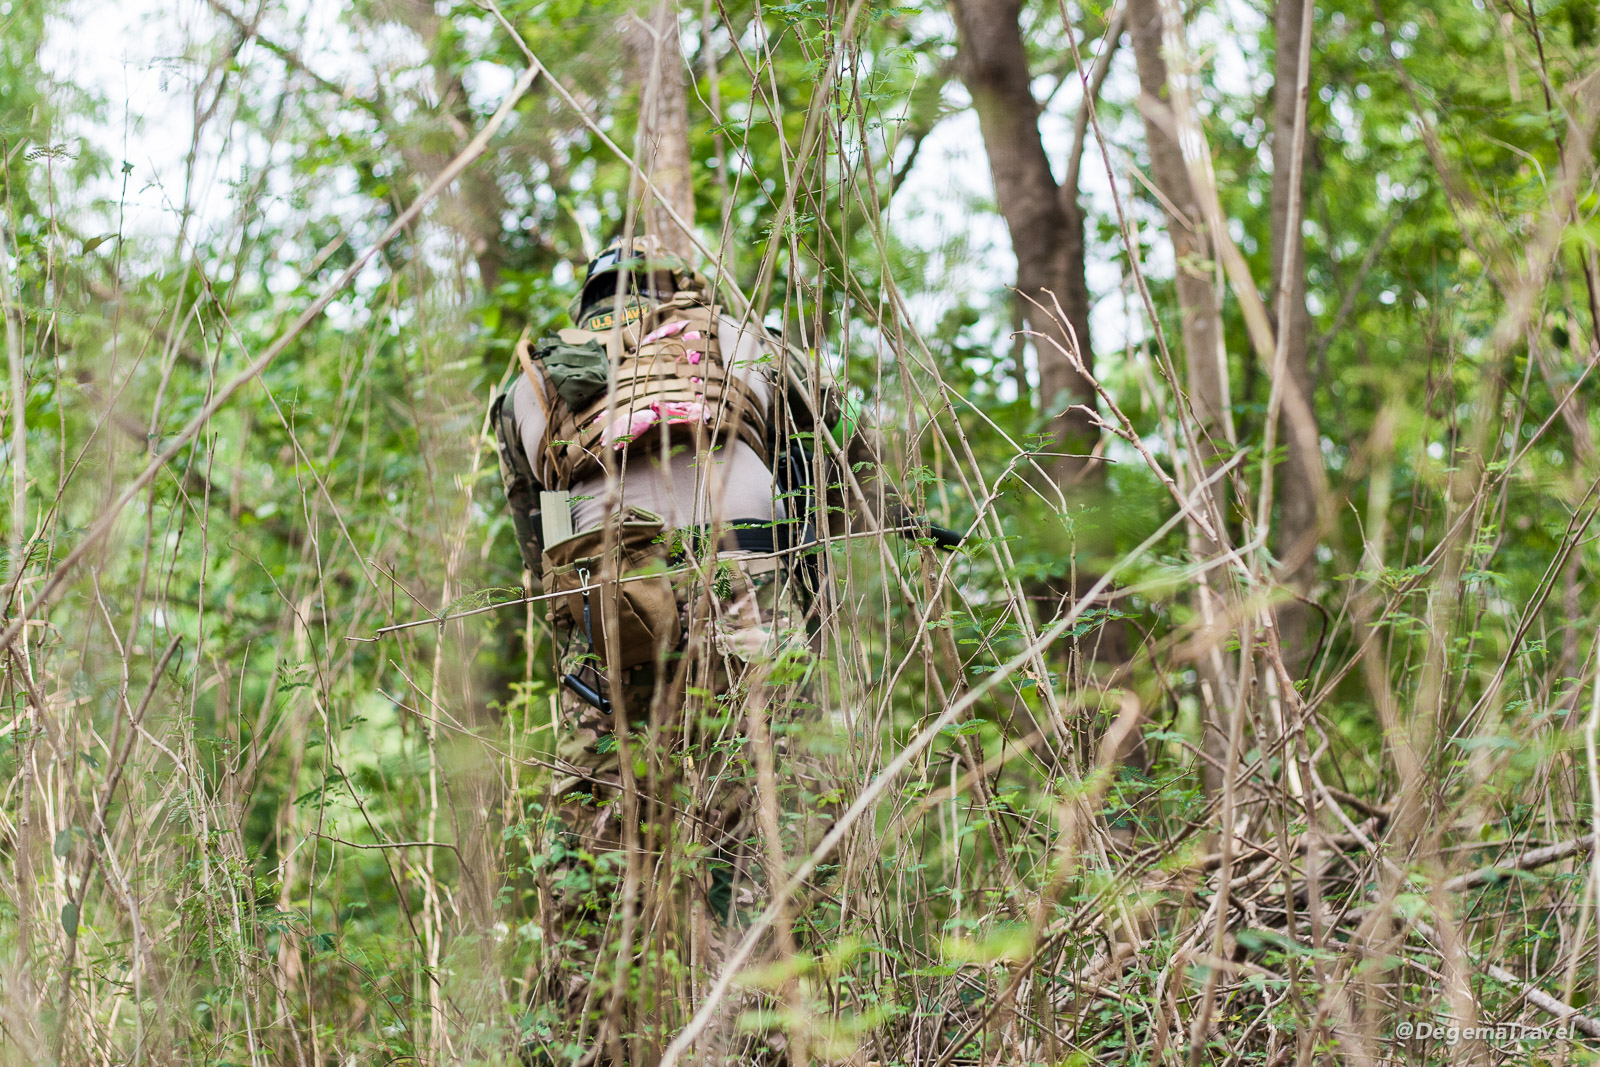 Airsoft Dudzki at the milsim in Kanchanaburi, Thailand